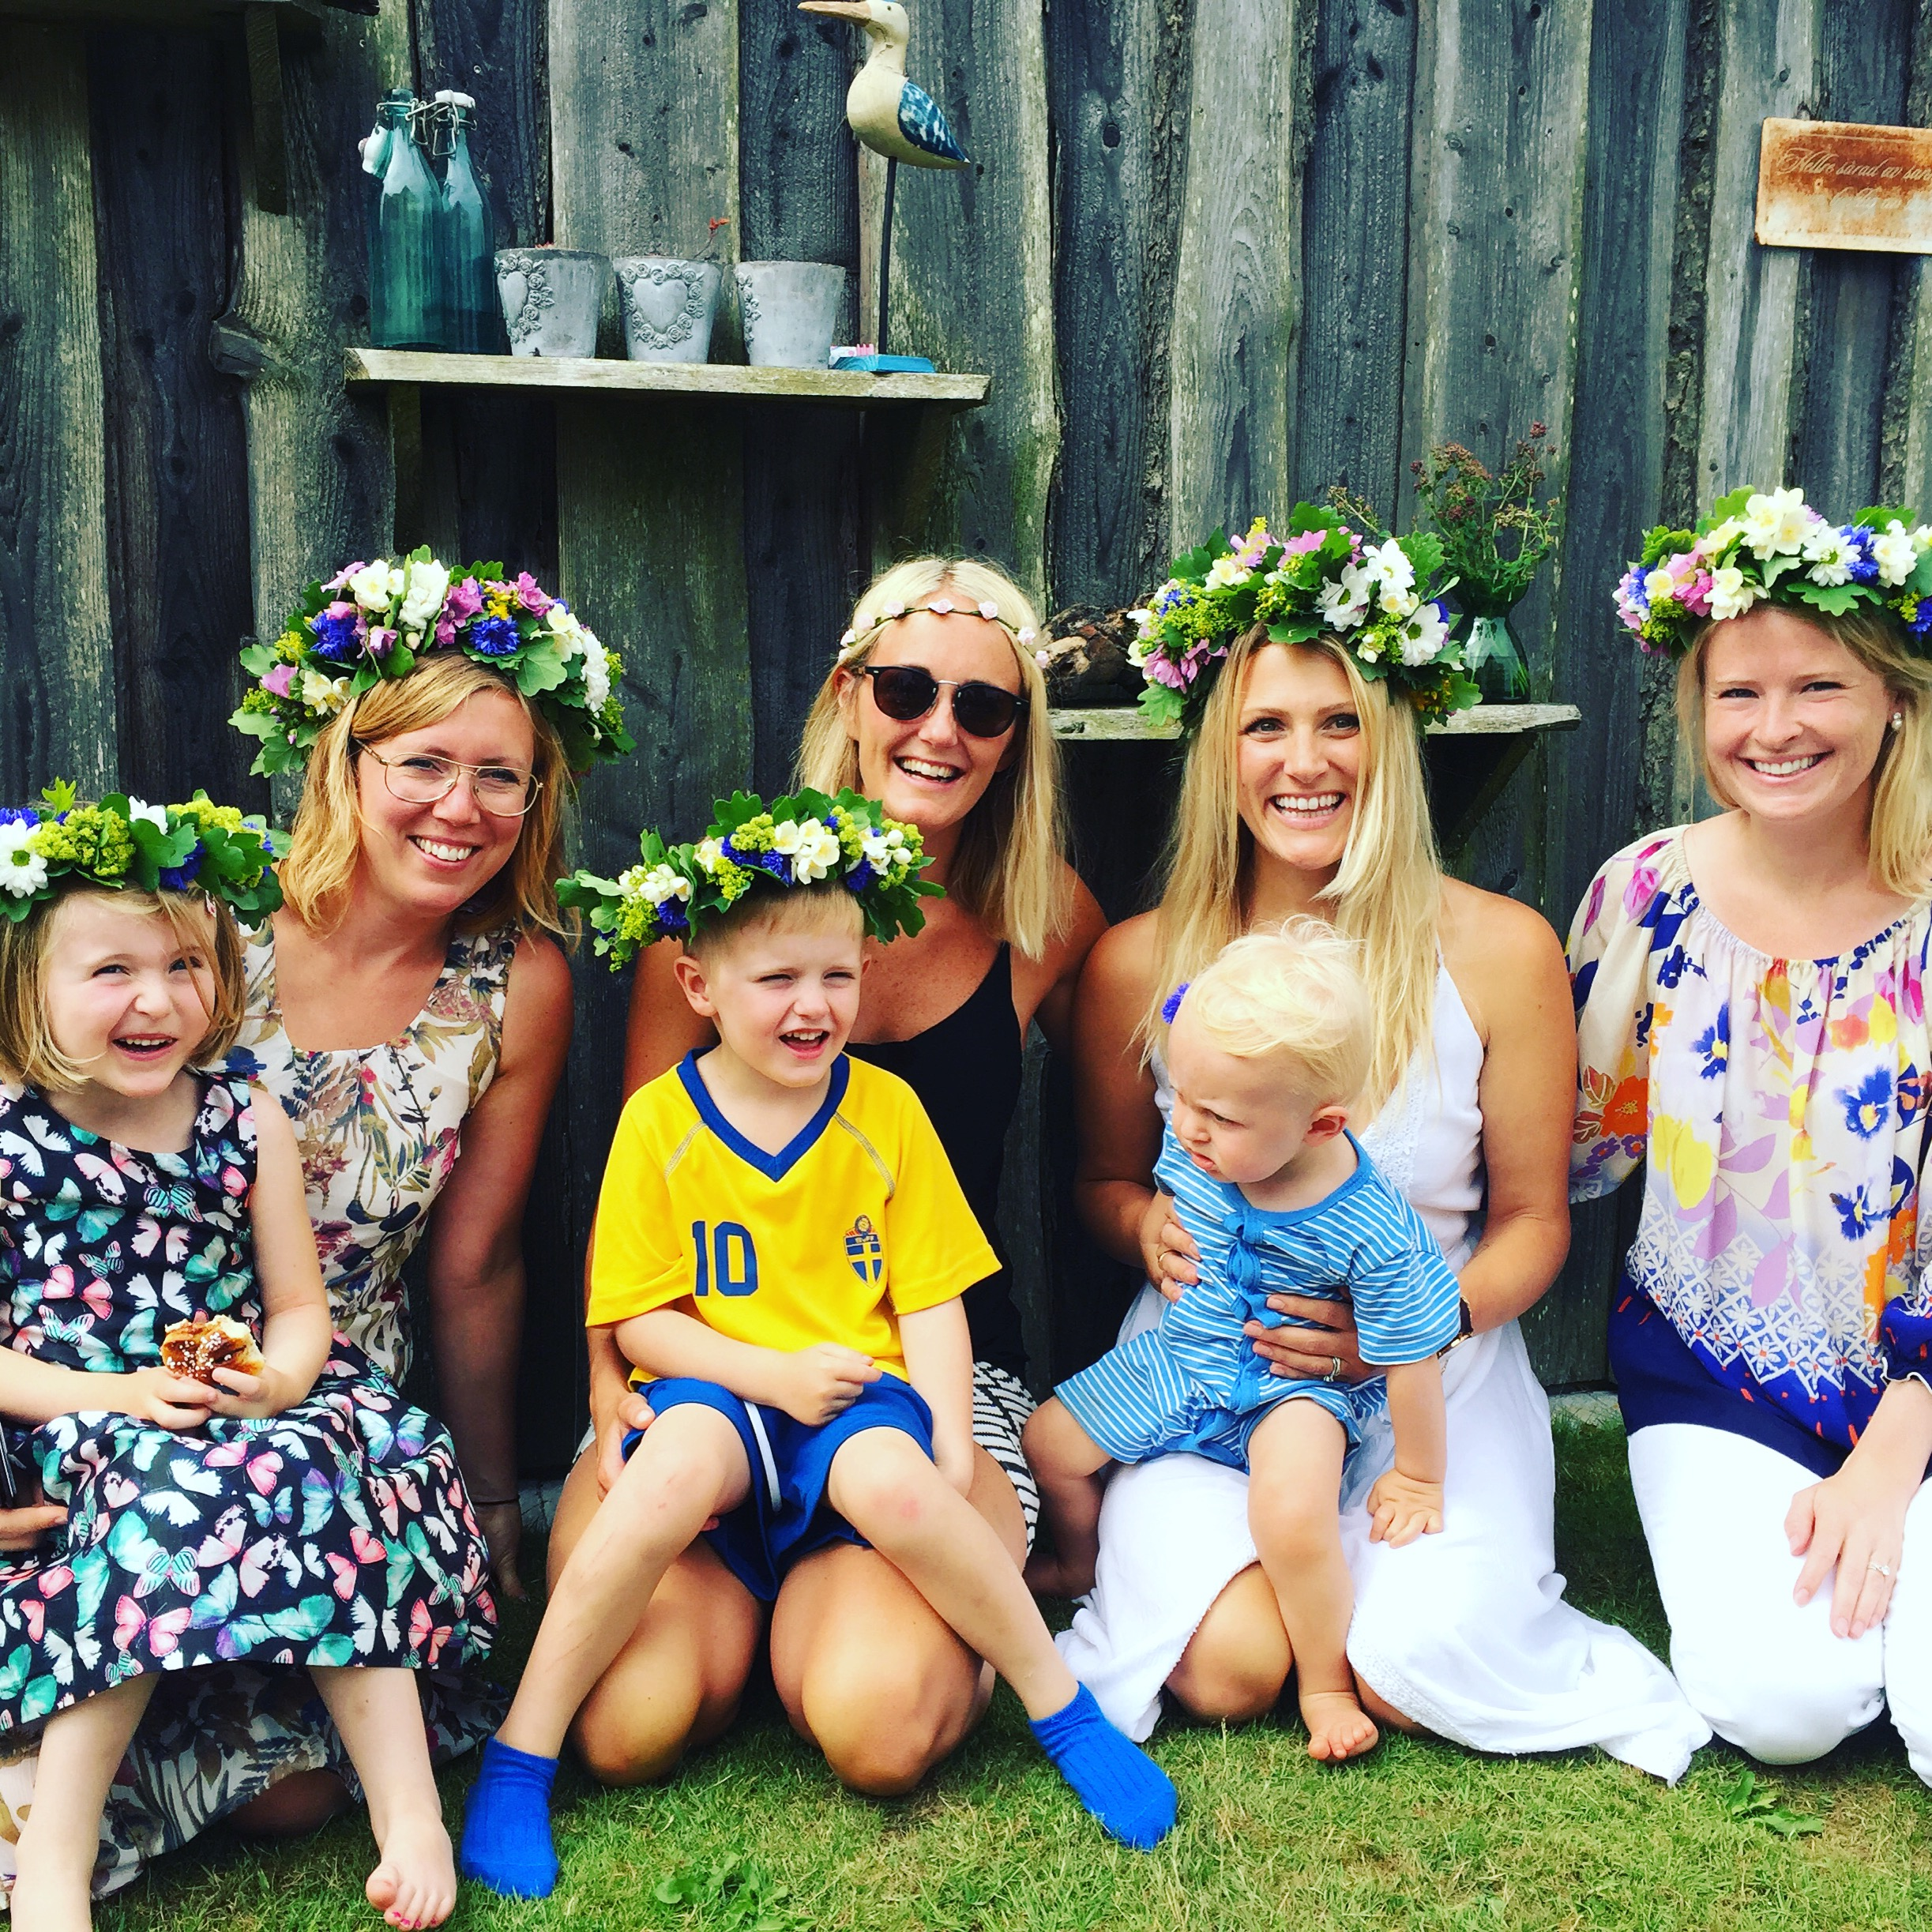 Swedish midsummer with my sisters-in-law and the kiddos (Felix is not a fan of flowercrowns... yet, he'll learn ha!)